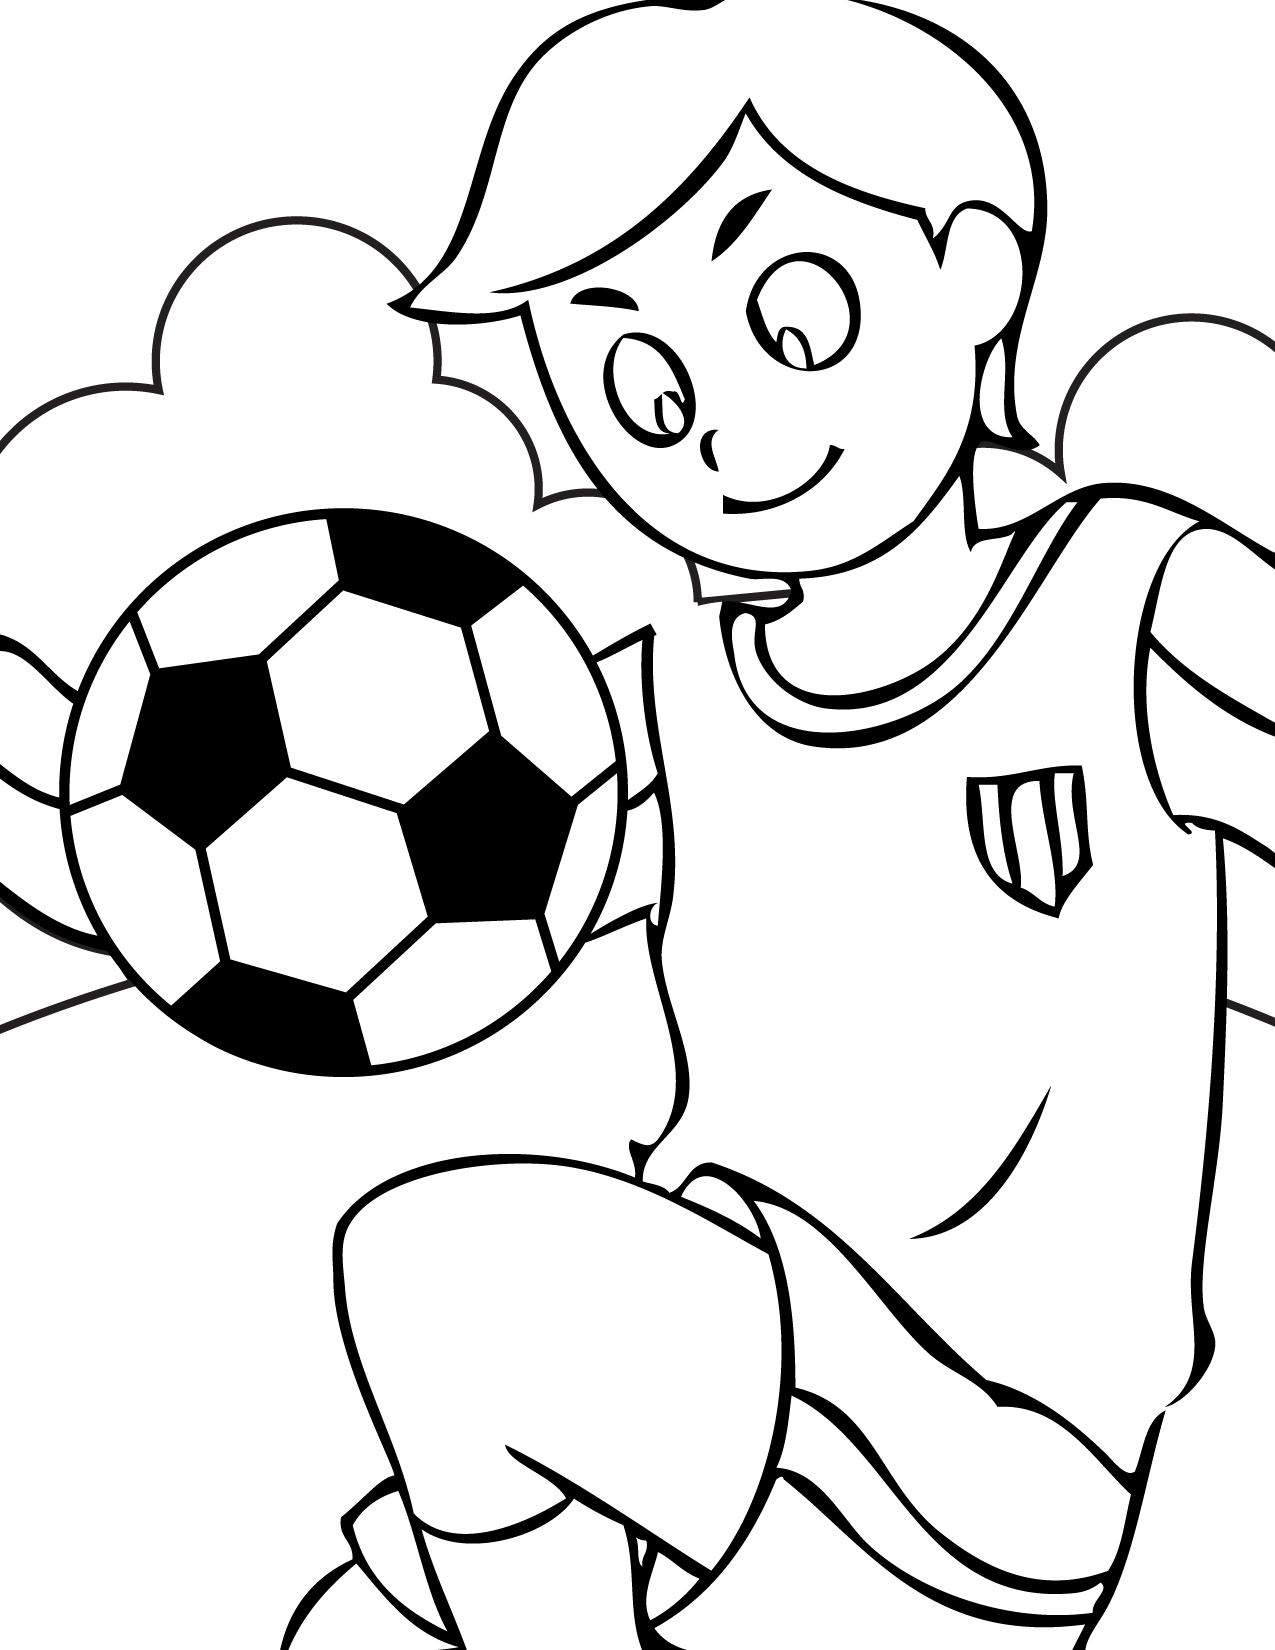 free sports coloring pages printable - photo#2